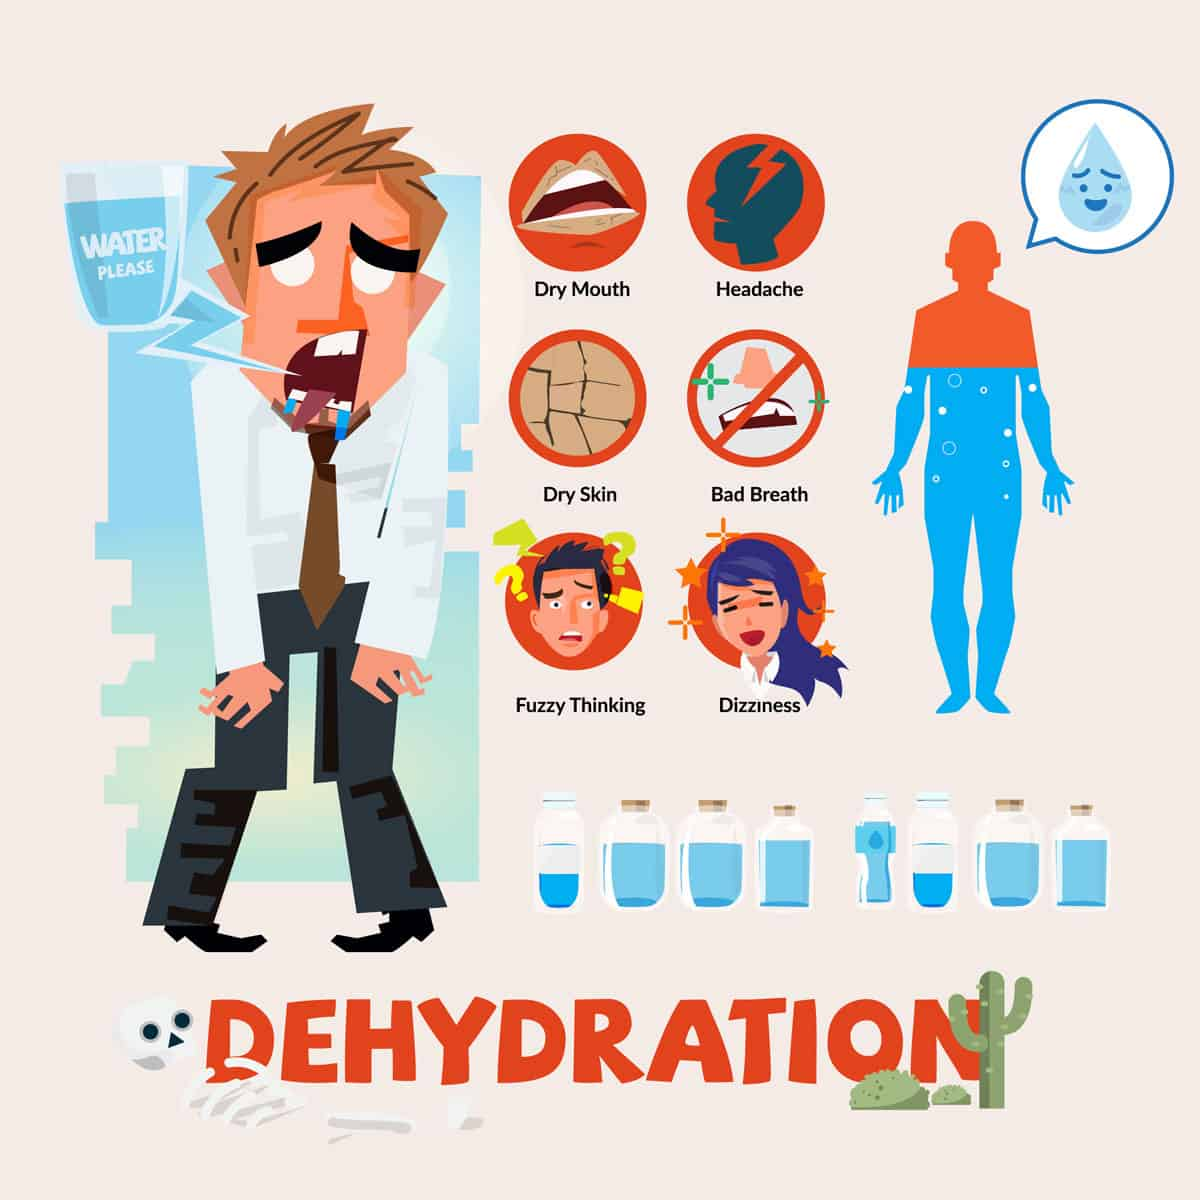 dehydration effects - thirst and it consequences